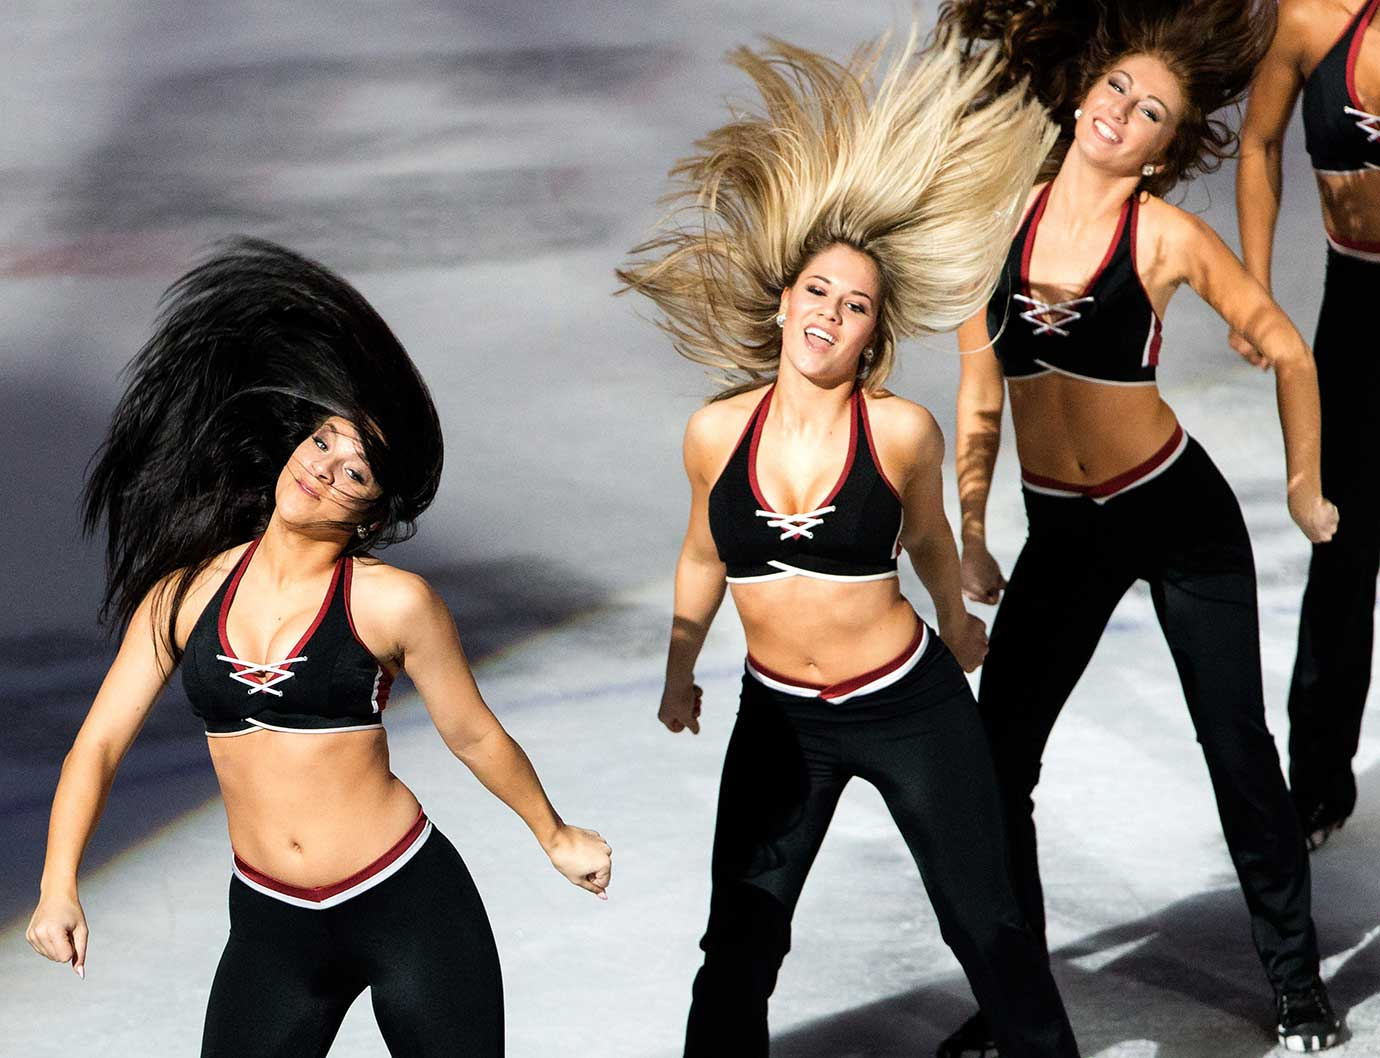 The Monsters Hockey Girls perform during an AHL game between the Rockford IceHogs and Lake Erie.